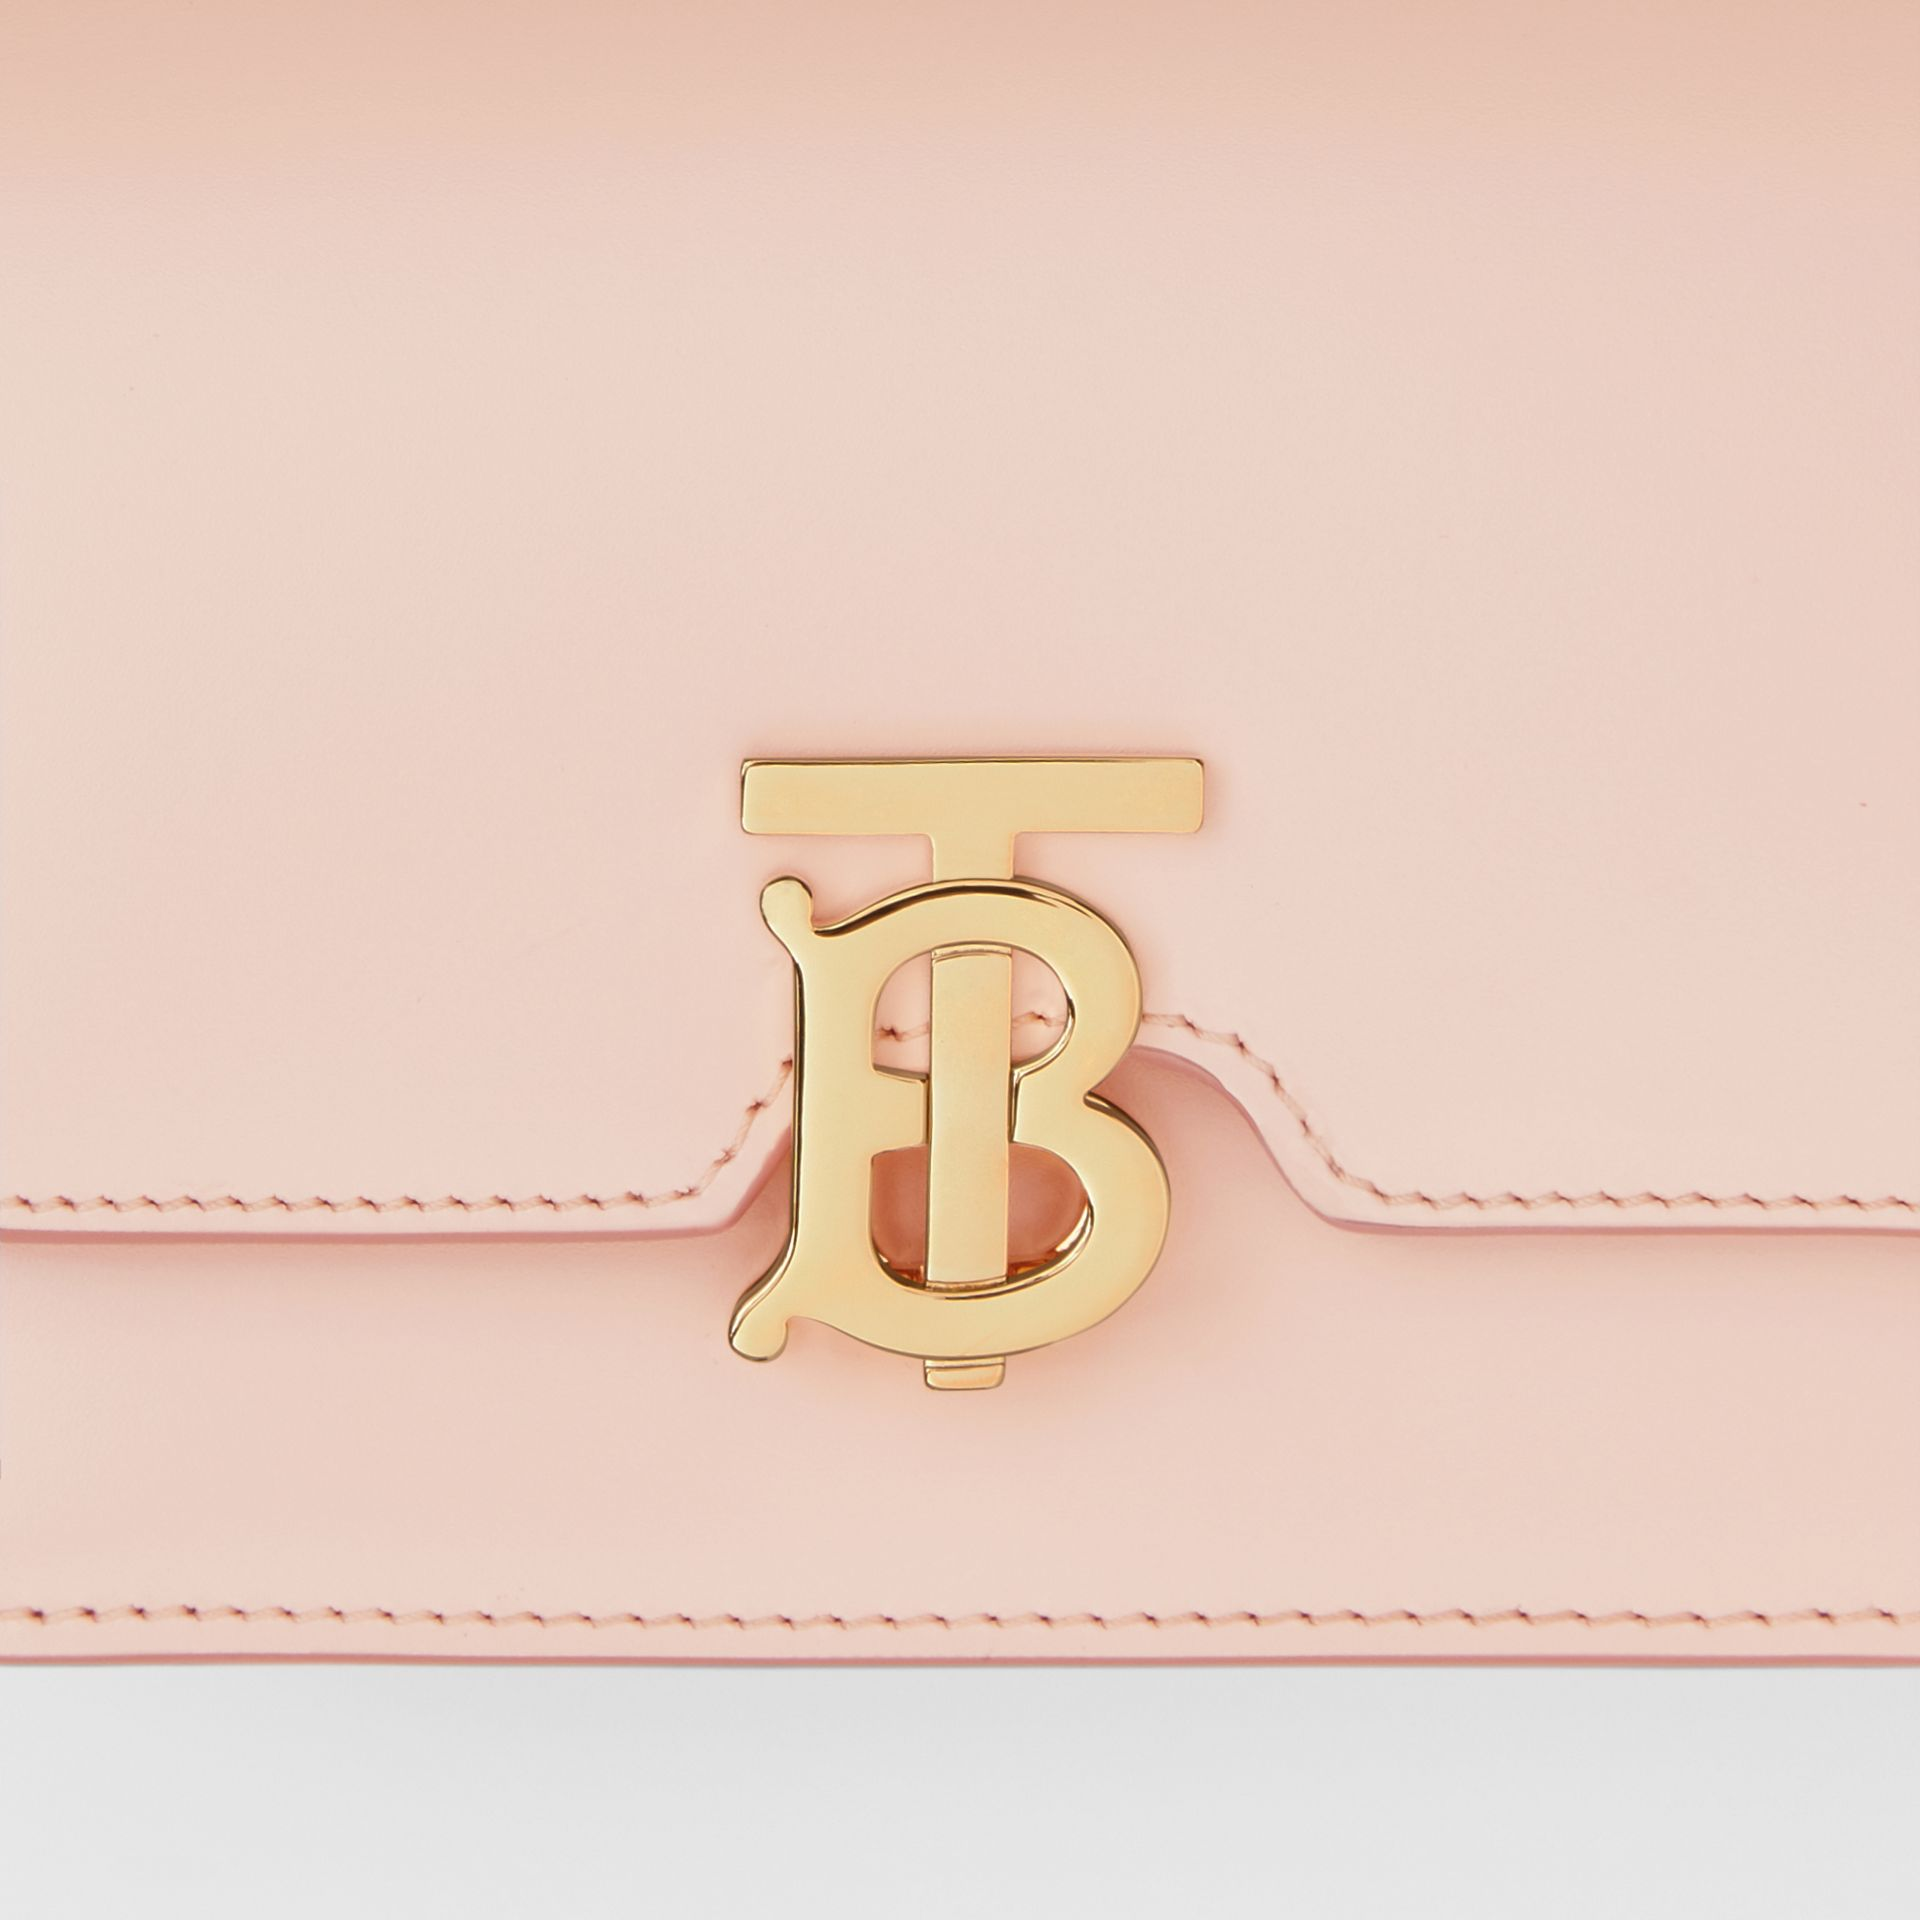 Mini Leather TB Bag in Rose Beige - Women | Burberry Hong Kong S.A.R - gallery image 1